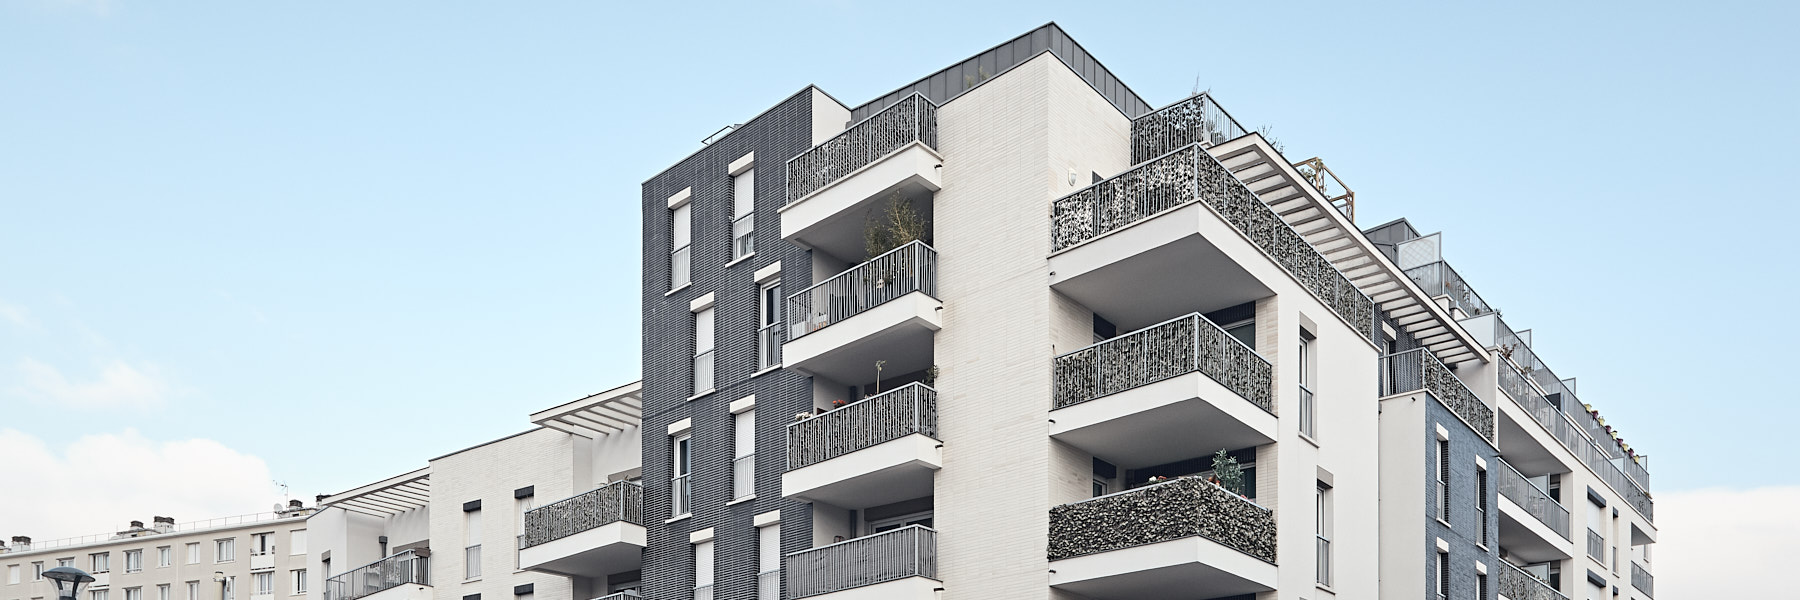 Vision'Air ensemble immobilier de logements par Atelier Cap architecture